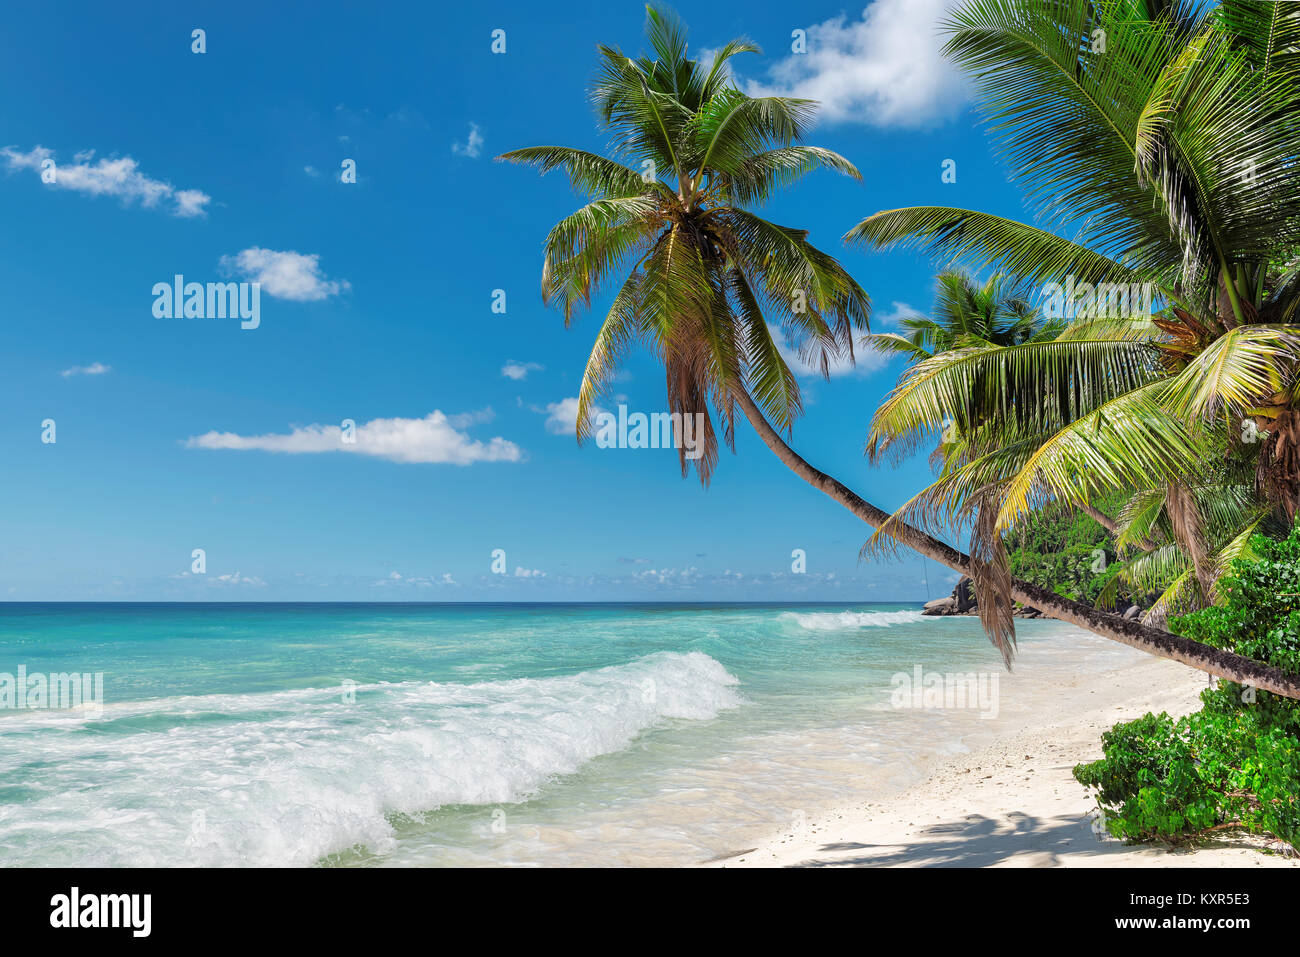 Palm trees on exotic tropical beach. Summer holiday and vacation concept background. - Stock Image